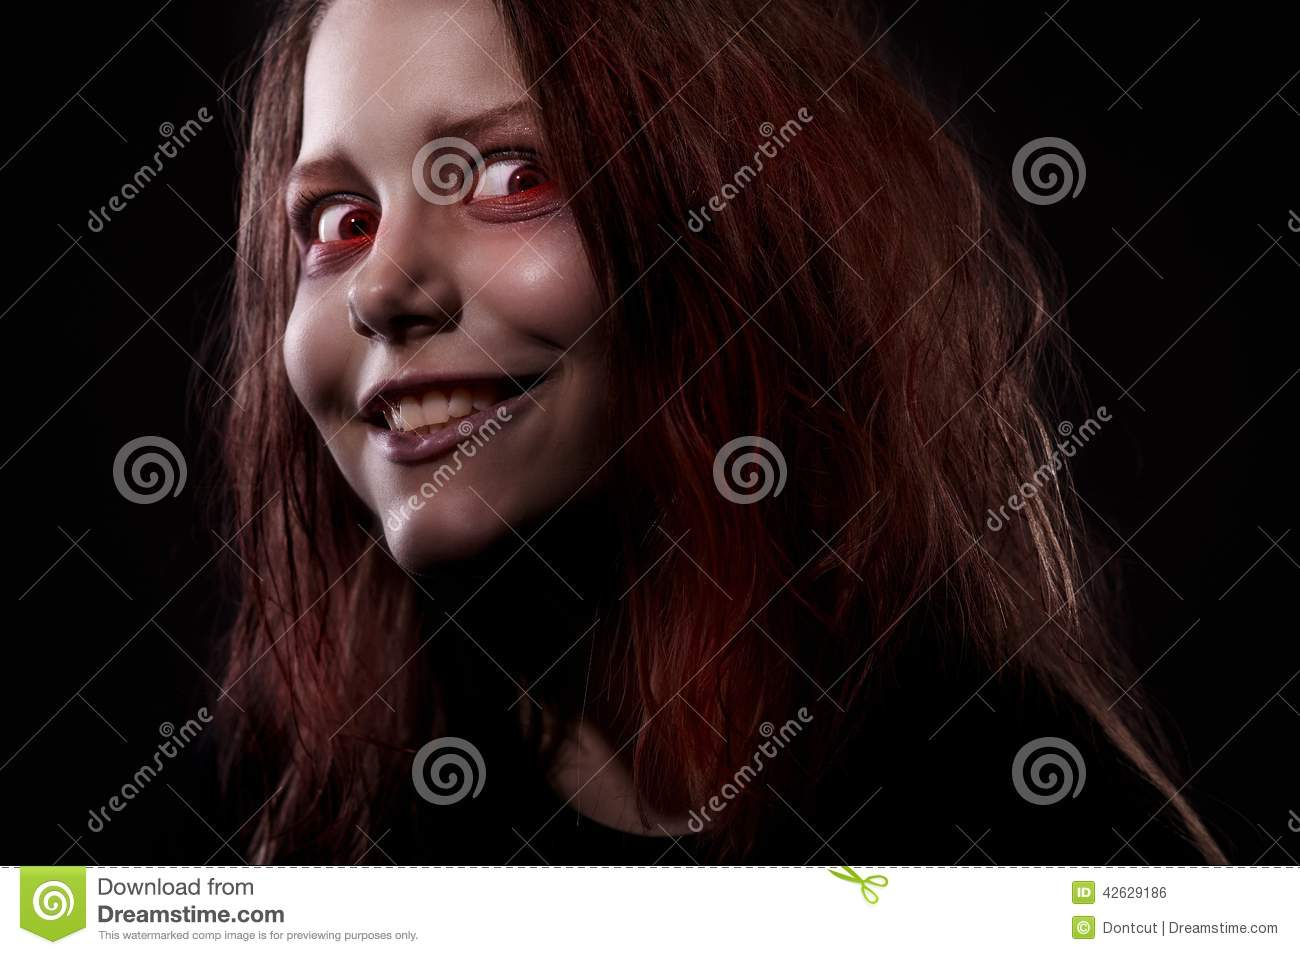 Girl Possessed By A Demon Stock Photo - Image: 42629186